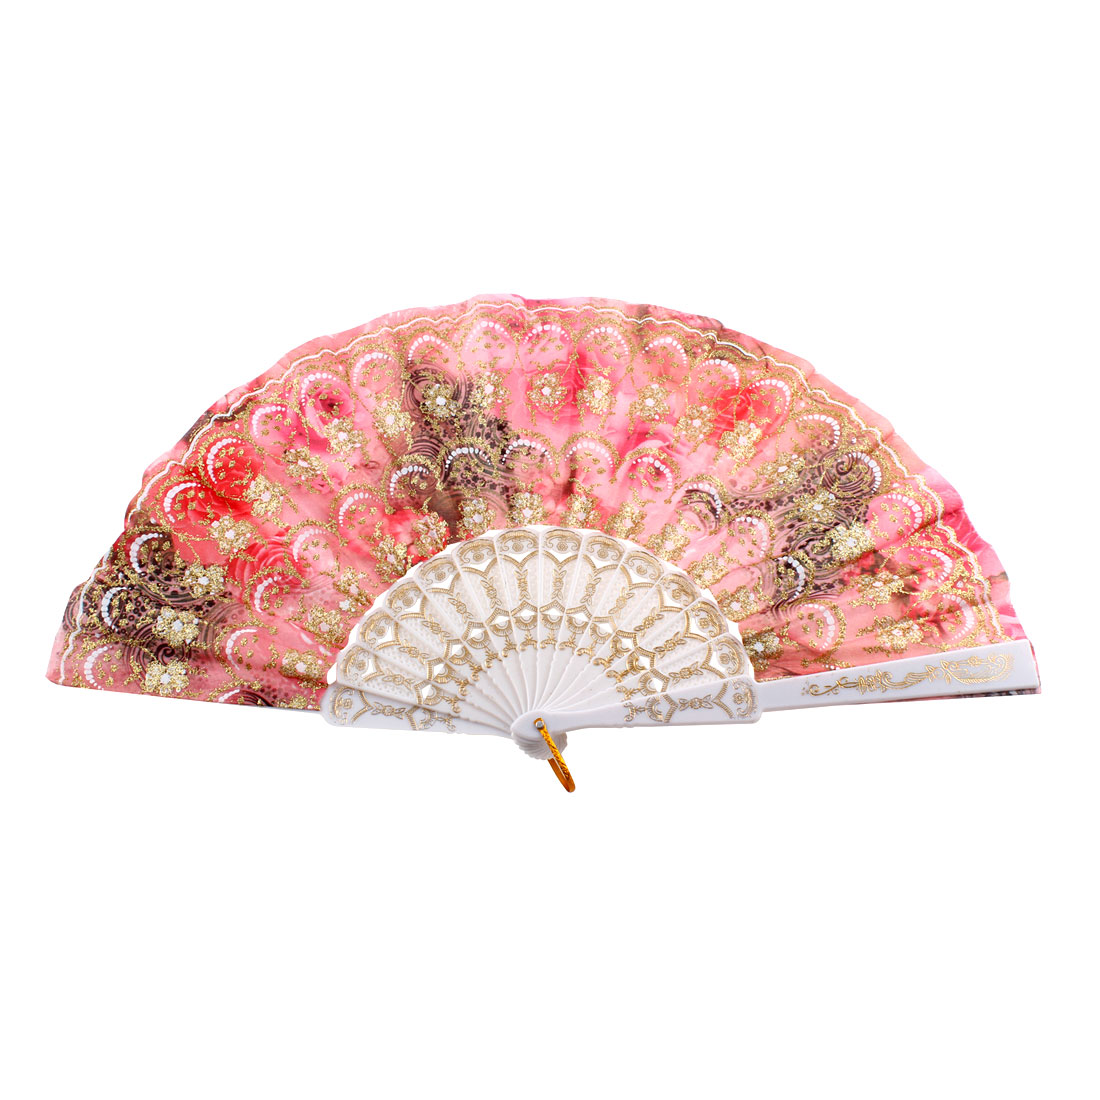 Lady Glittery Powder Accent Flower Print Decorative Folding Hand Fan Pink